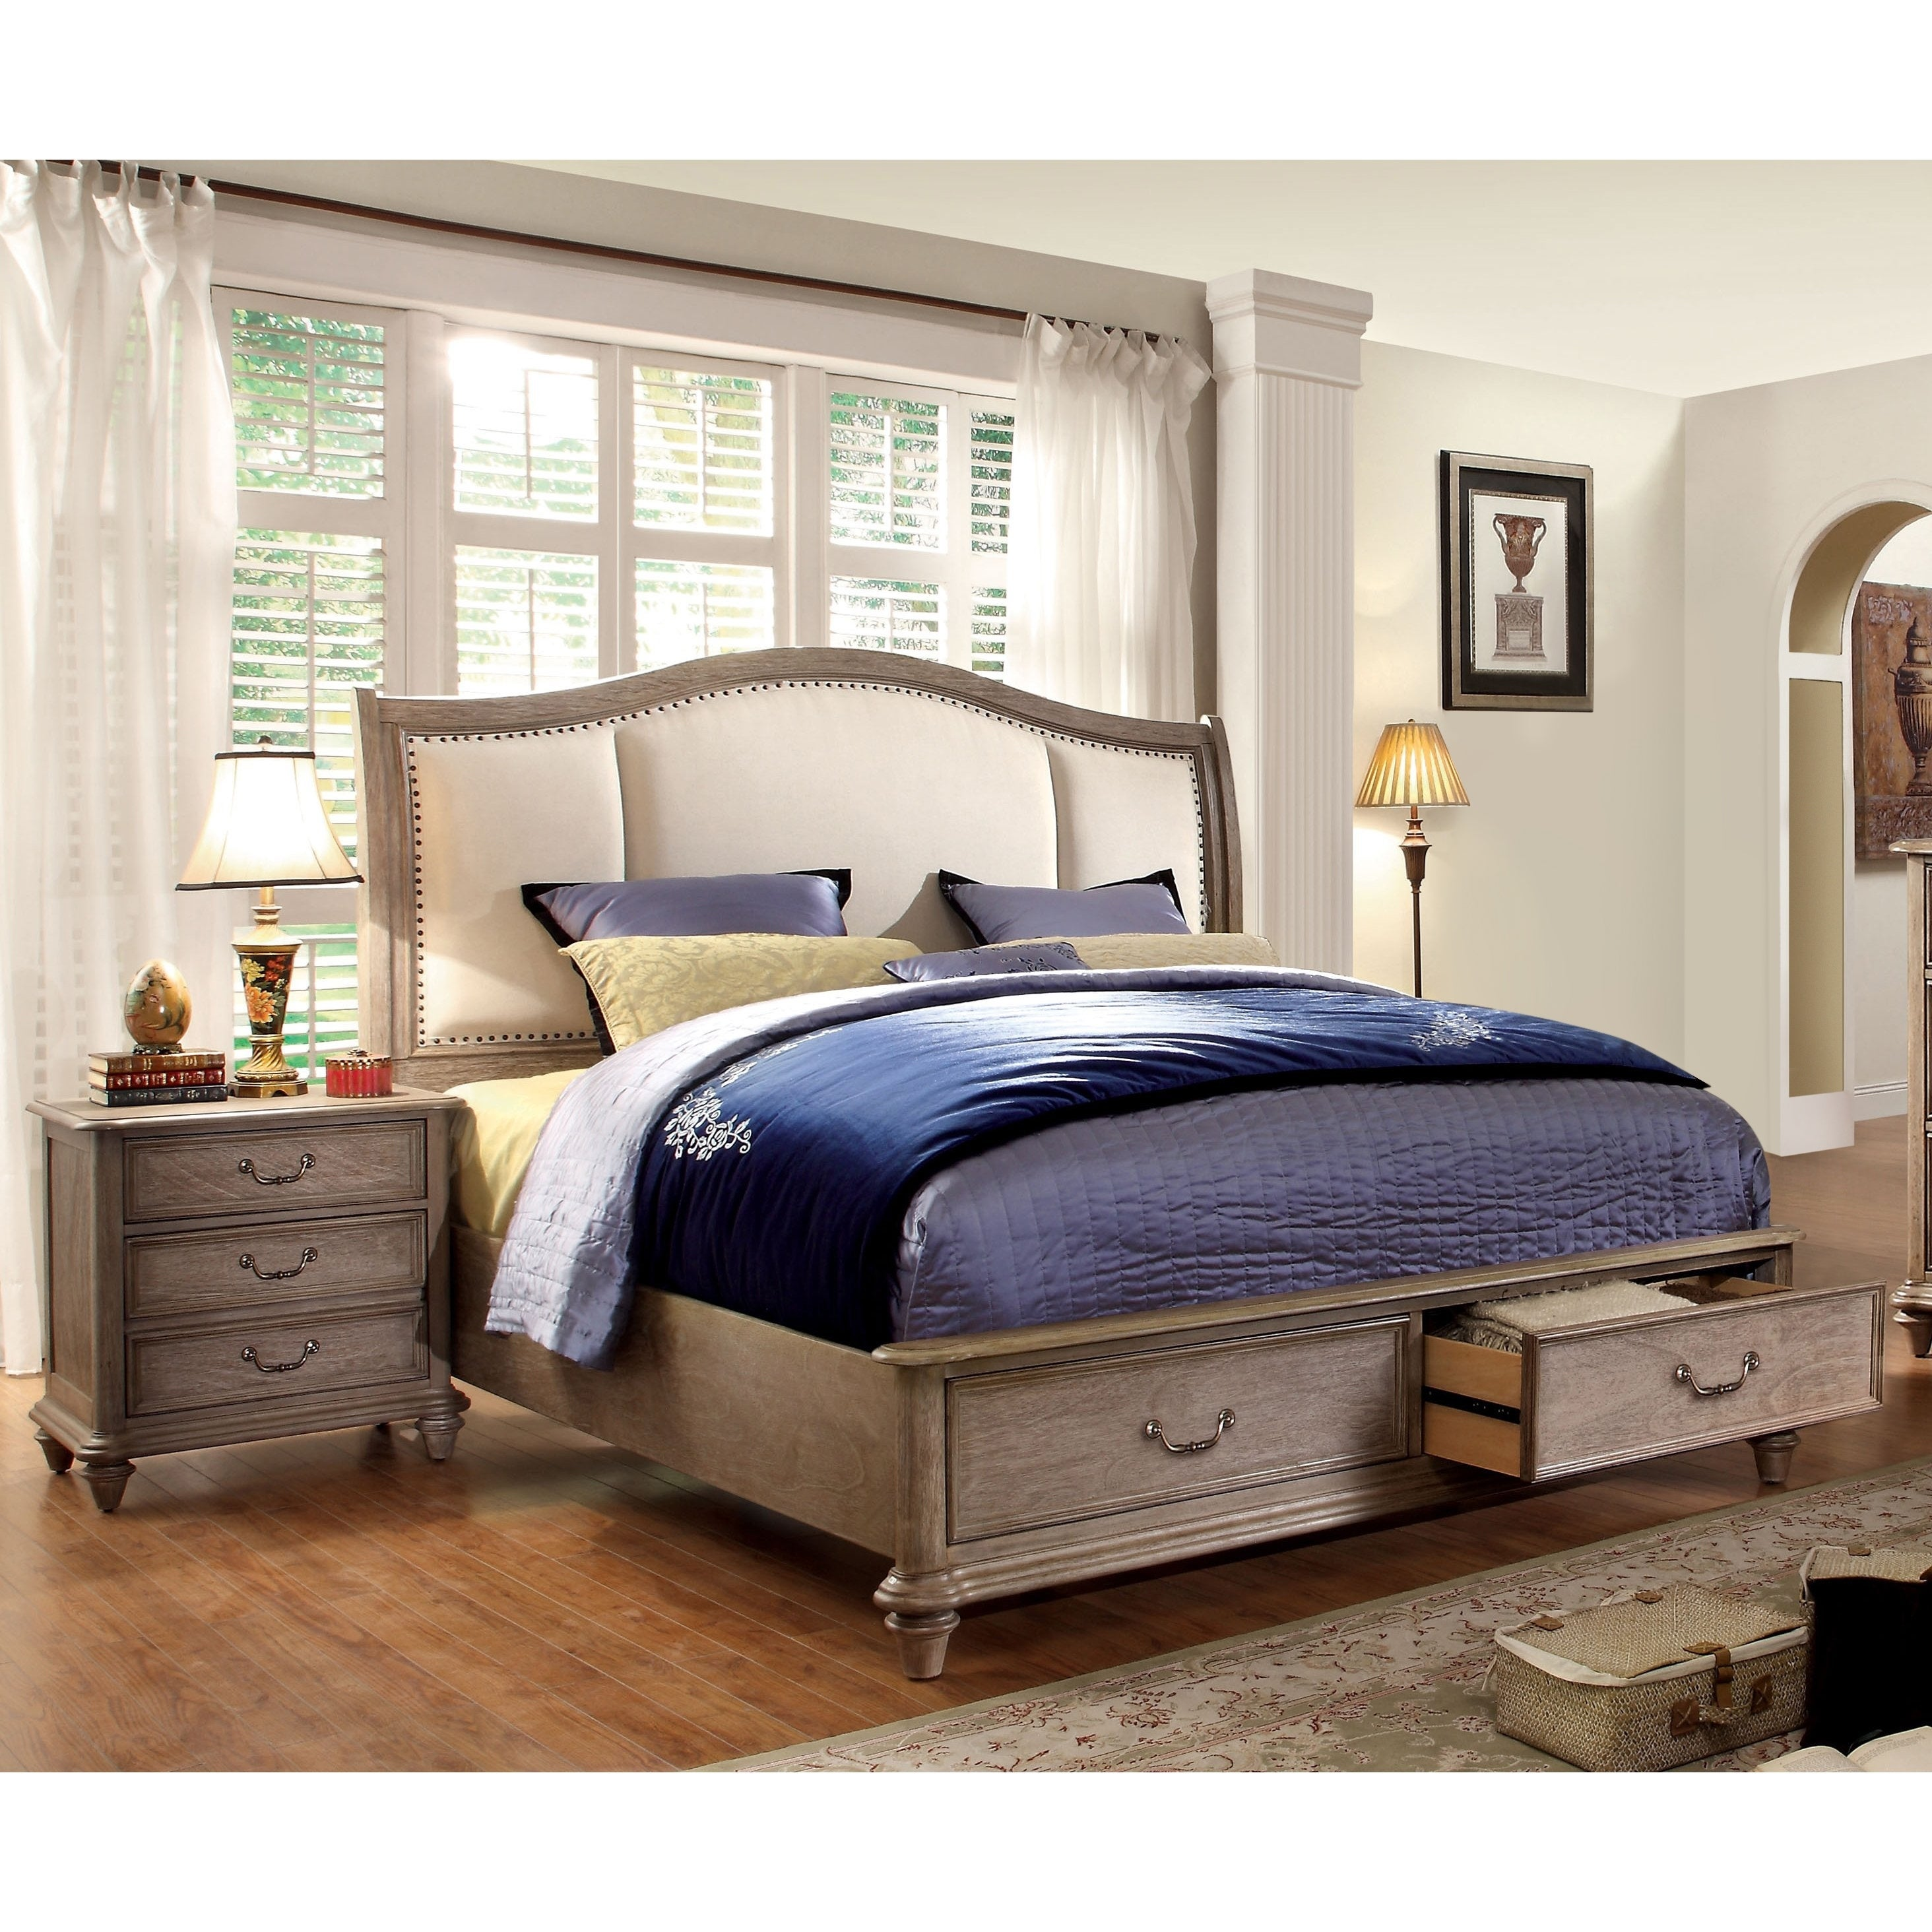 Shop Furniture Of America Pury Rustic Brown Solid Wood 2 Piece Bedroom Set Overstock 10001077